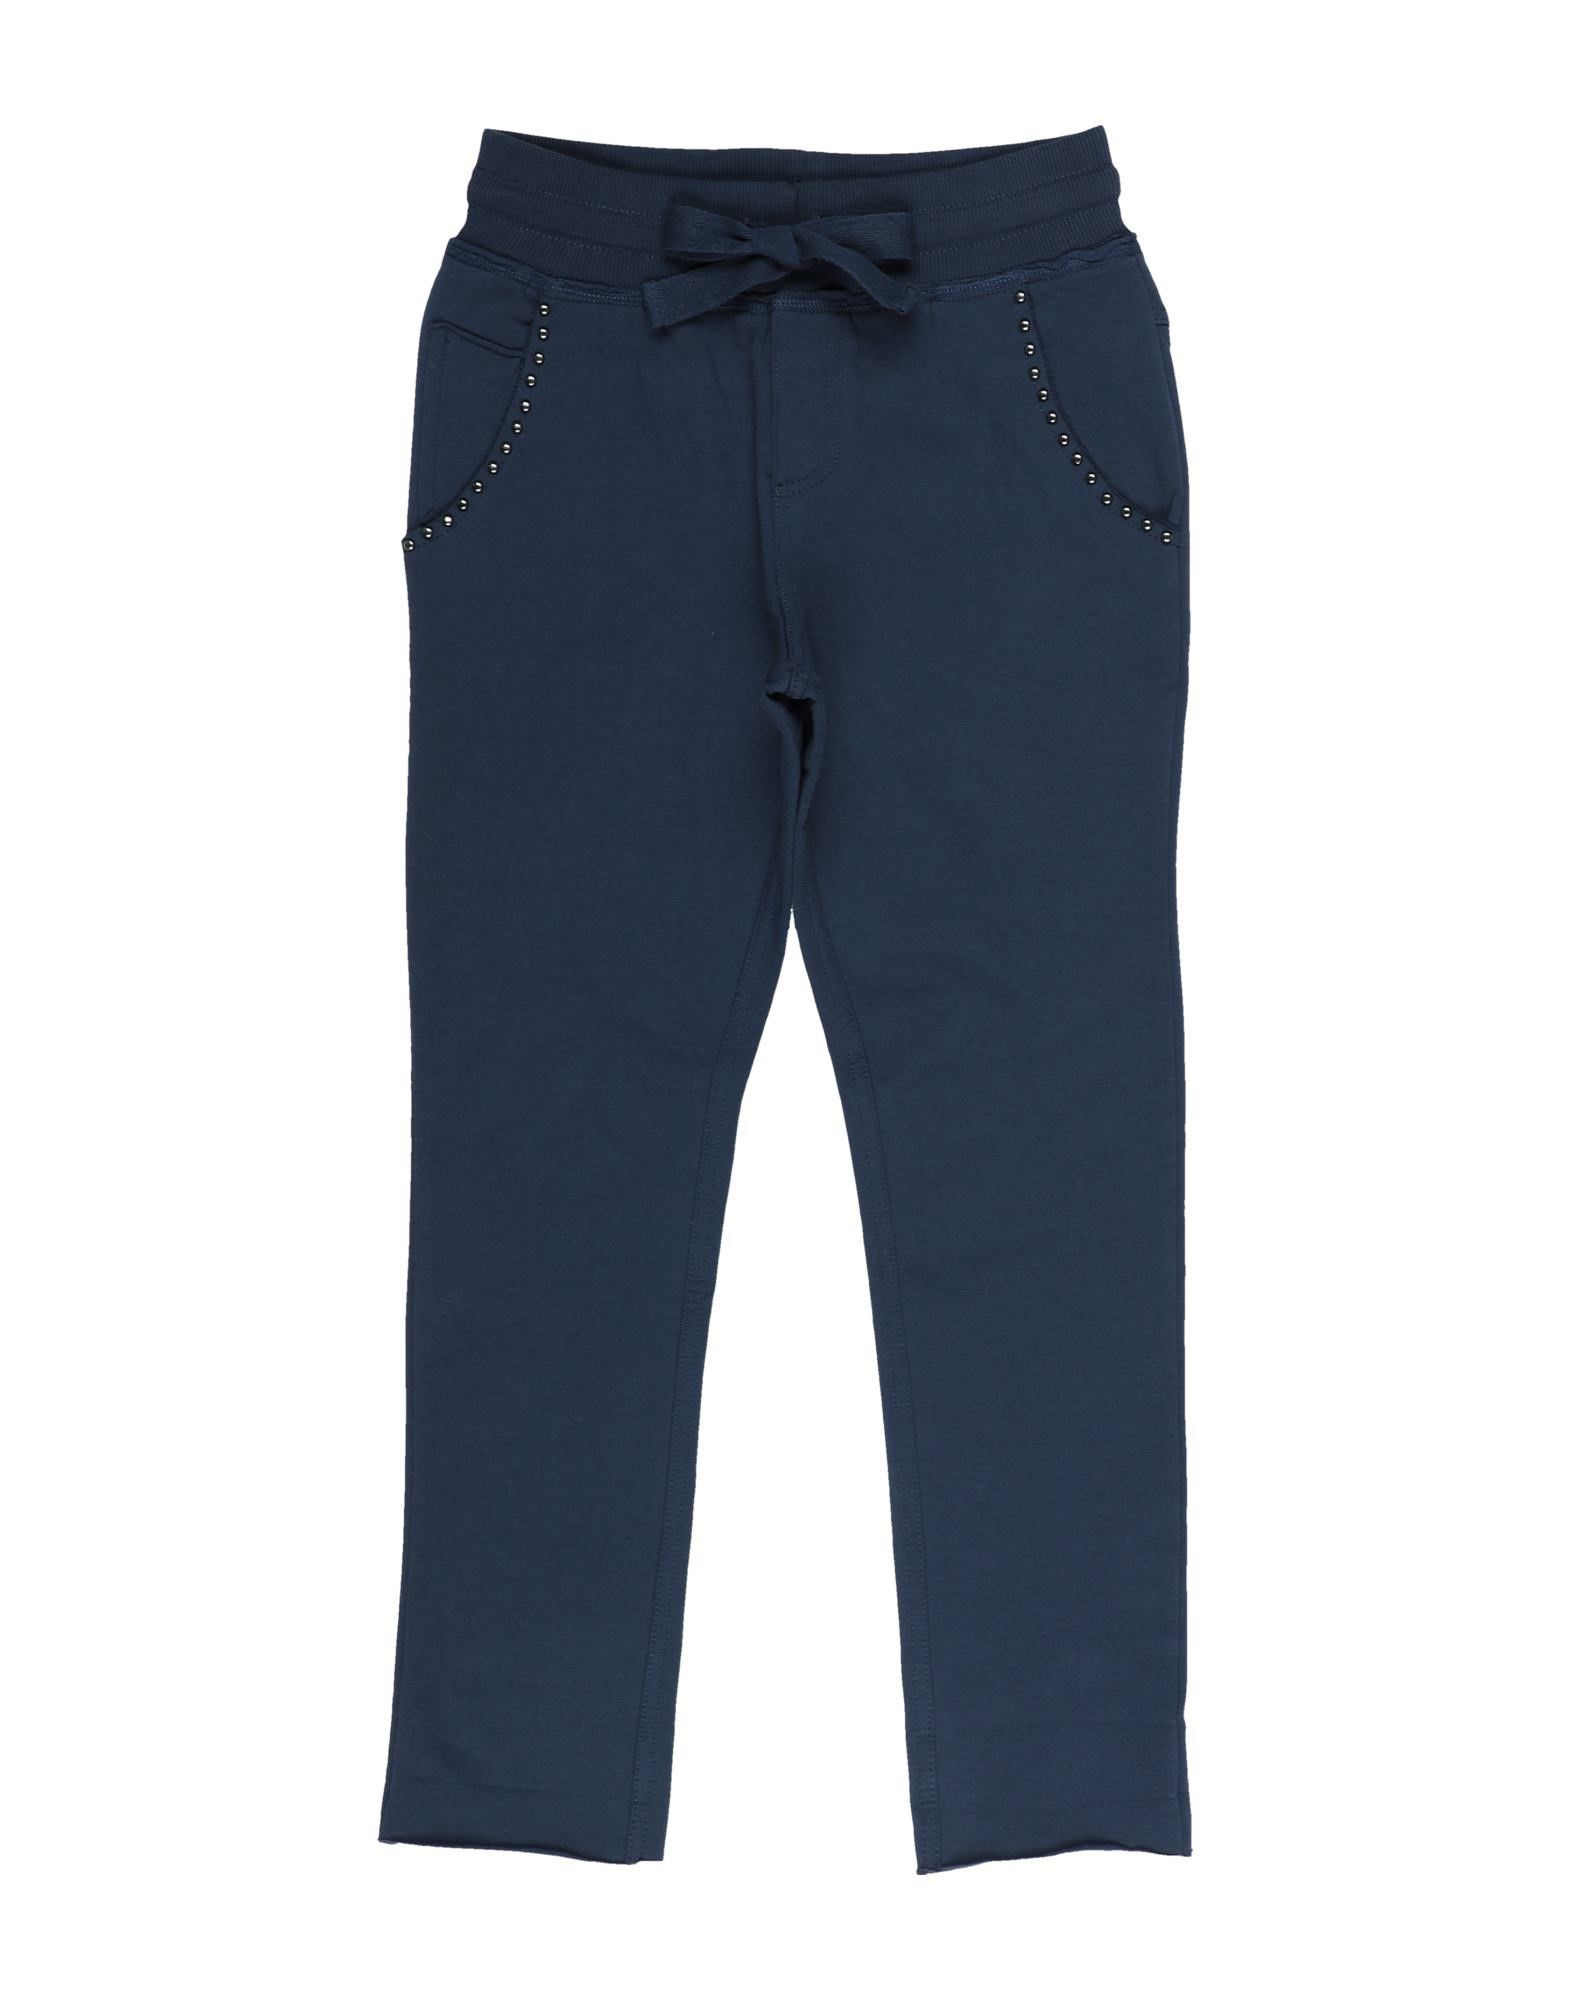 Grant Garçon Kids' Casual Pants In Blue